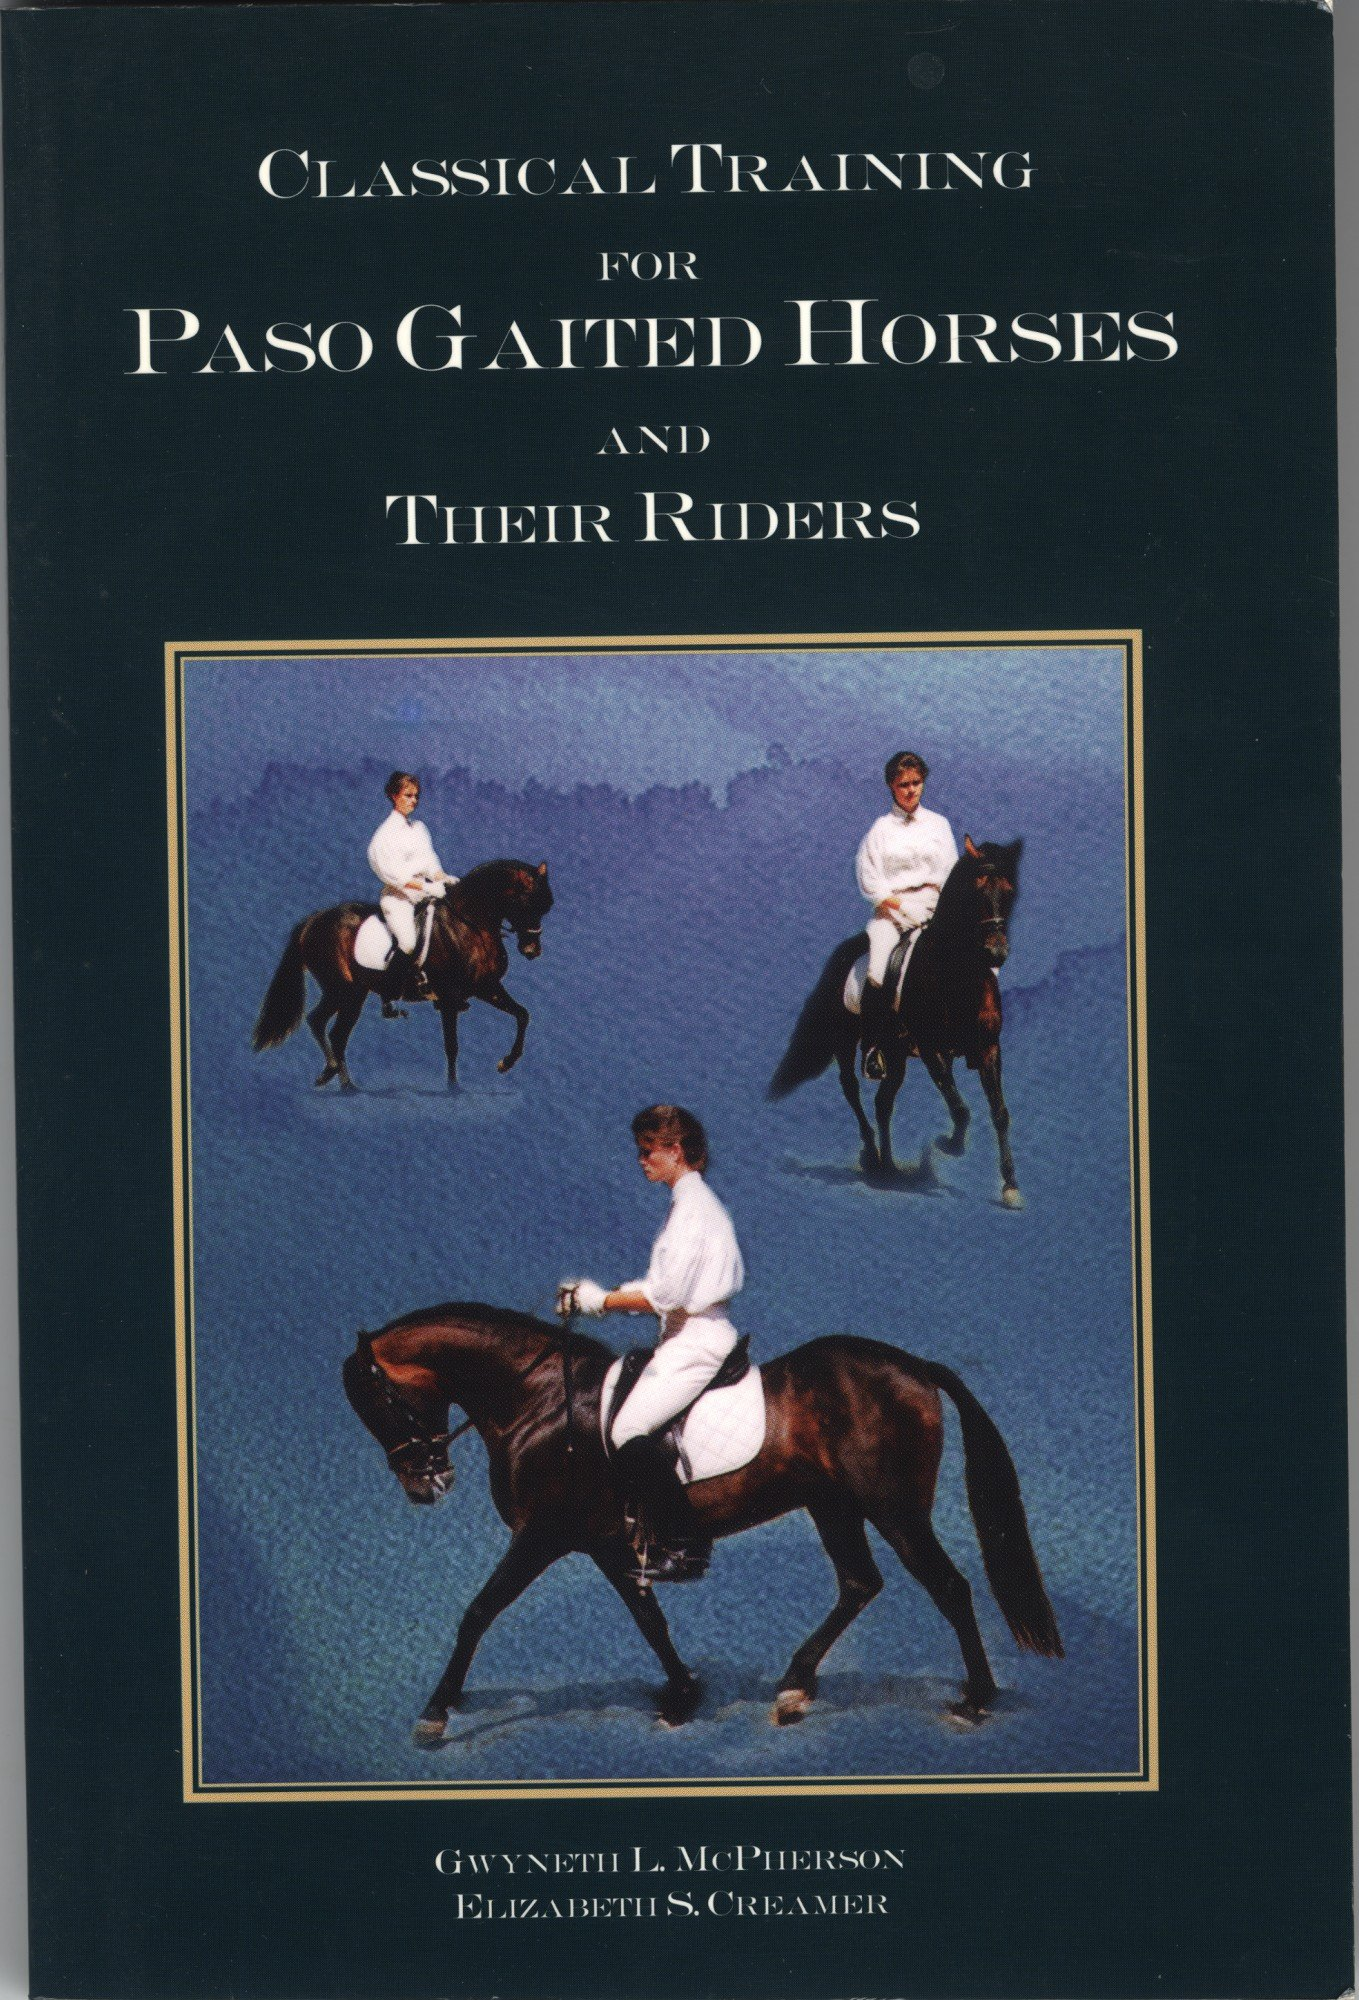 Classical Training for Paso Gaited Horses and Their Riders